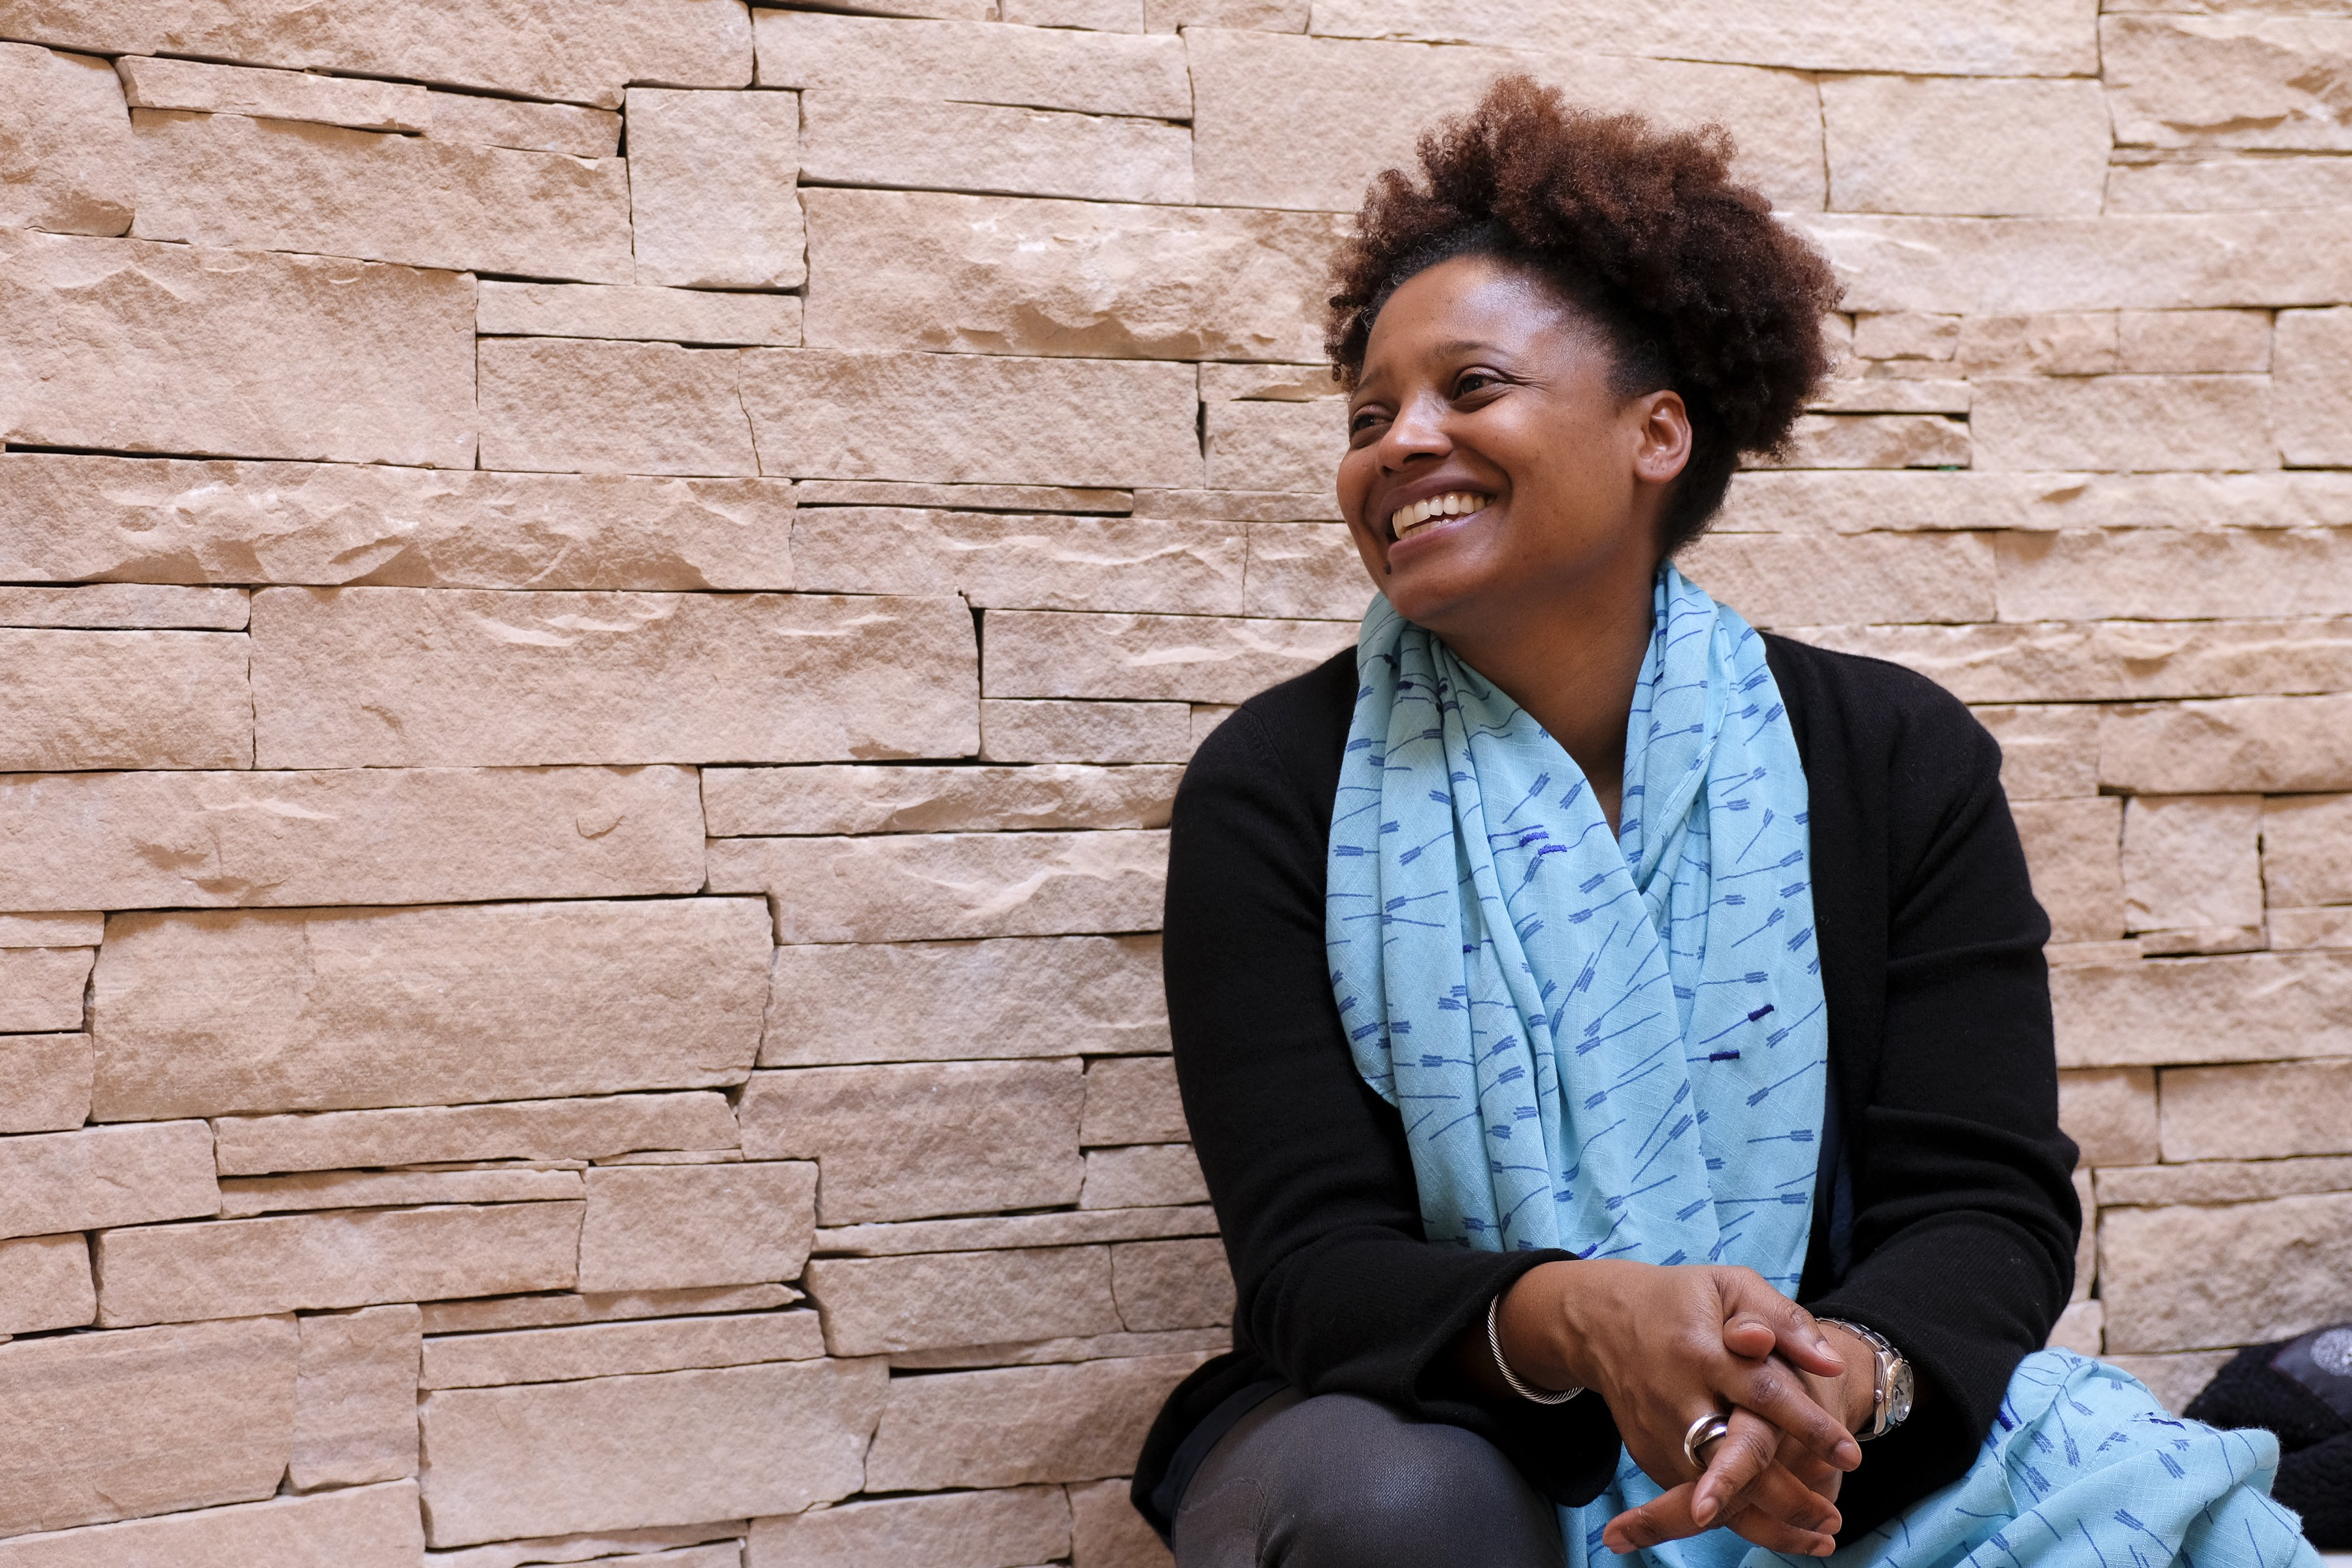 U.S. Poet Laureate Brings Poetry To Podcast And Radio Audiences With The Slowdown by Tracy K. Smith for Poetry Foundation